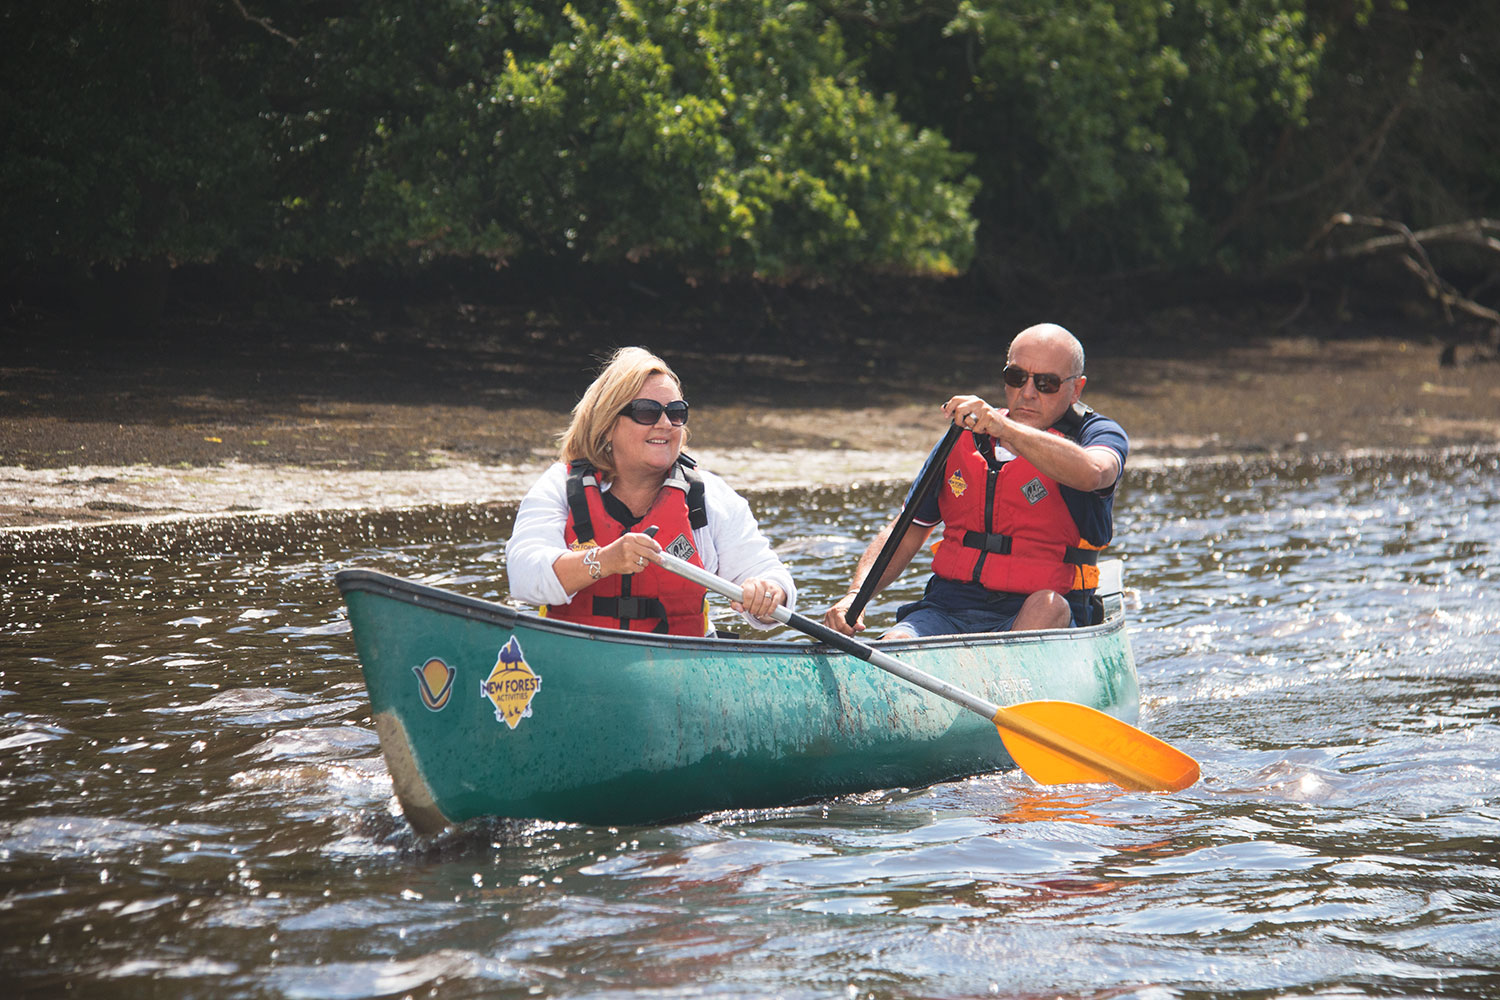 Activities for couples available mid week, outside of school holidays.